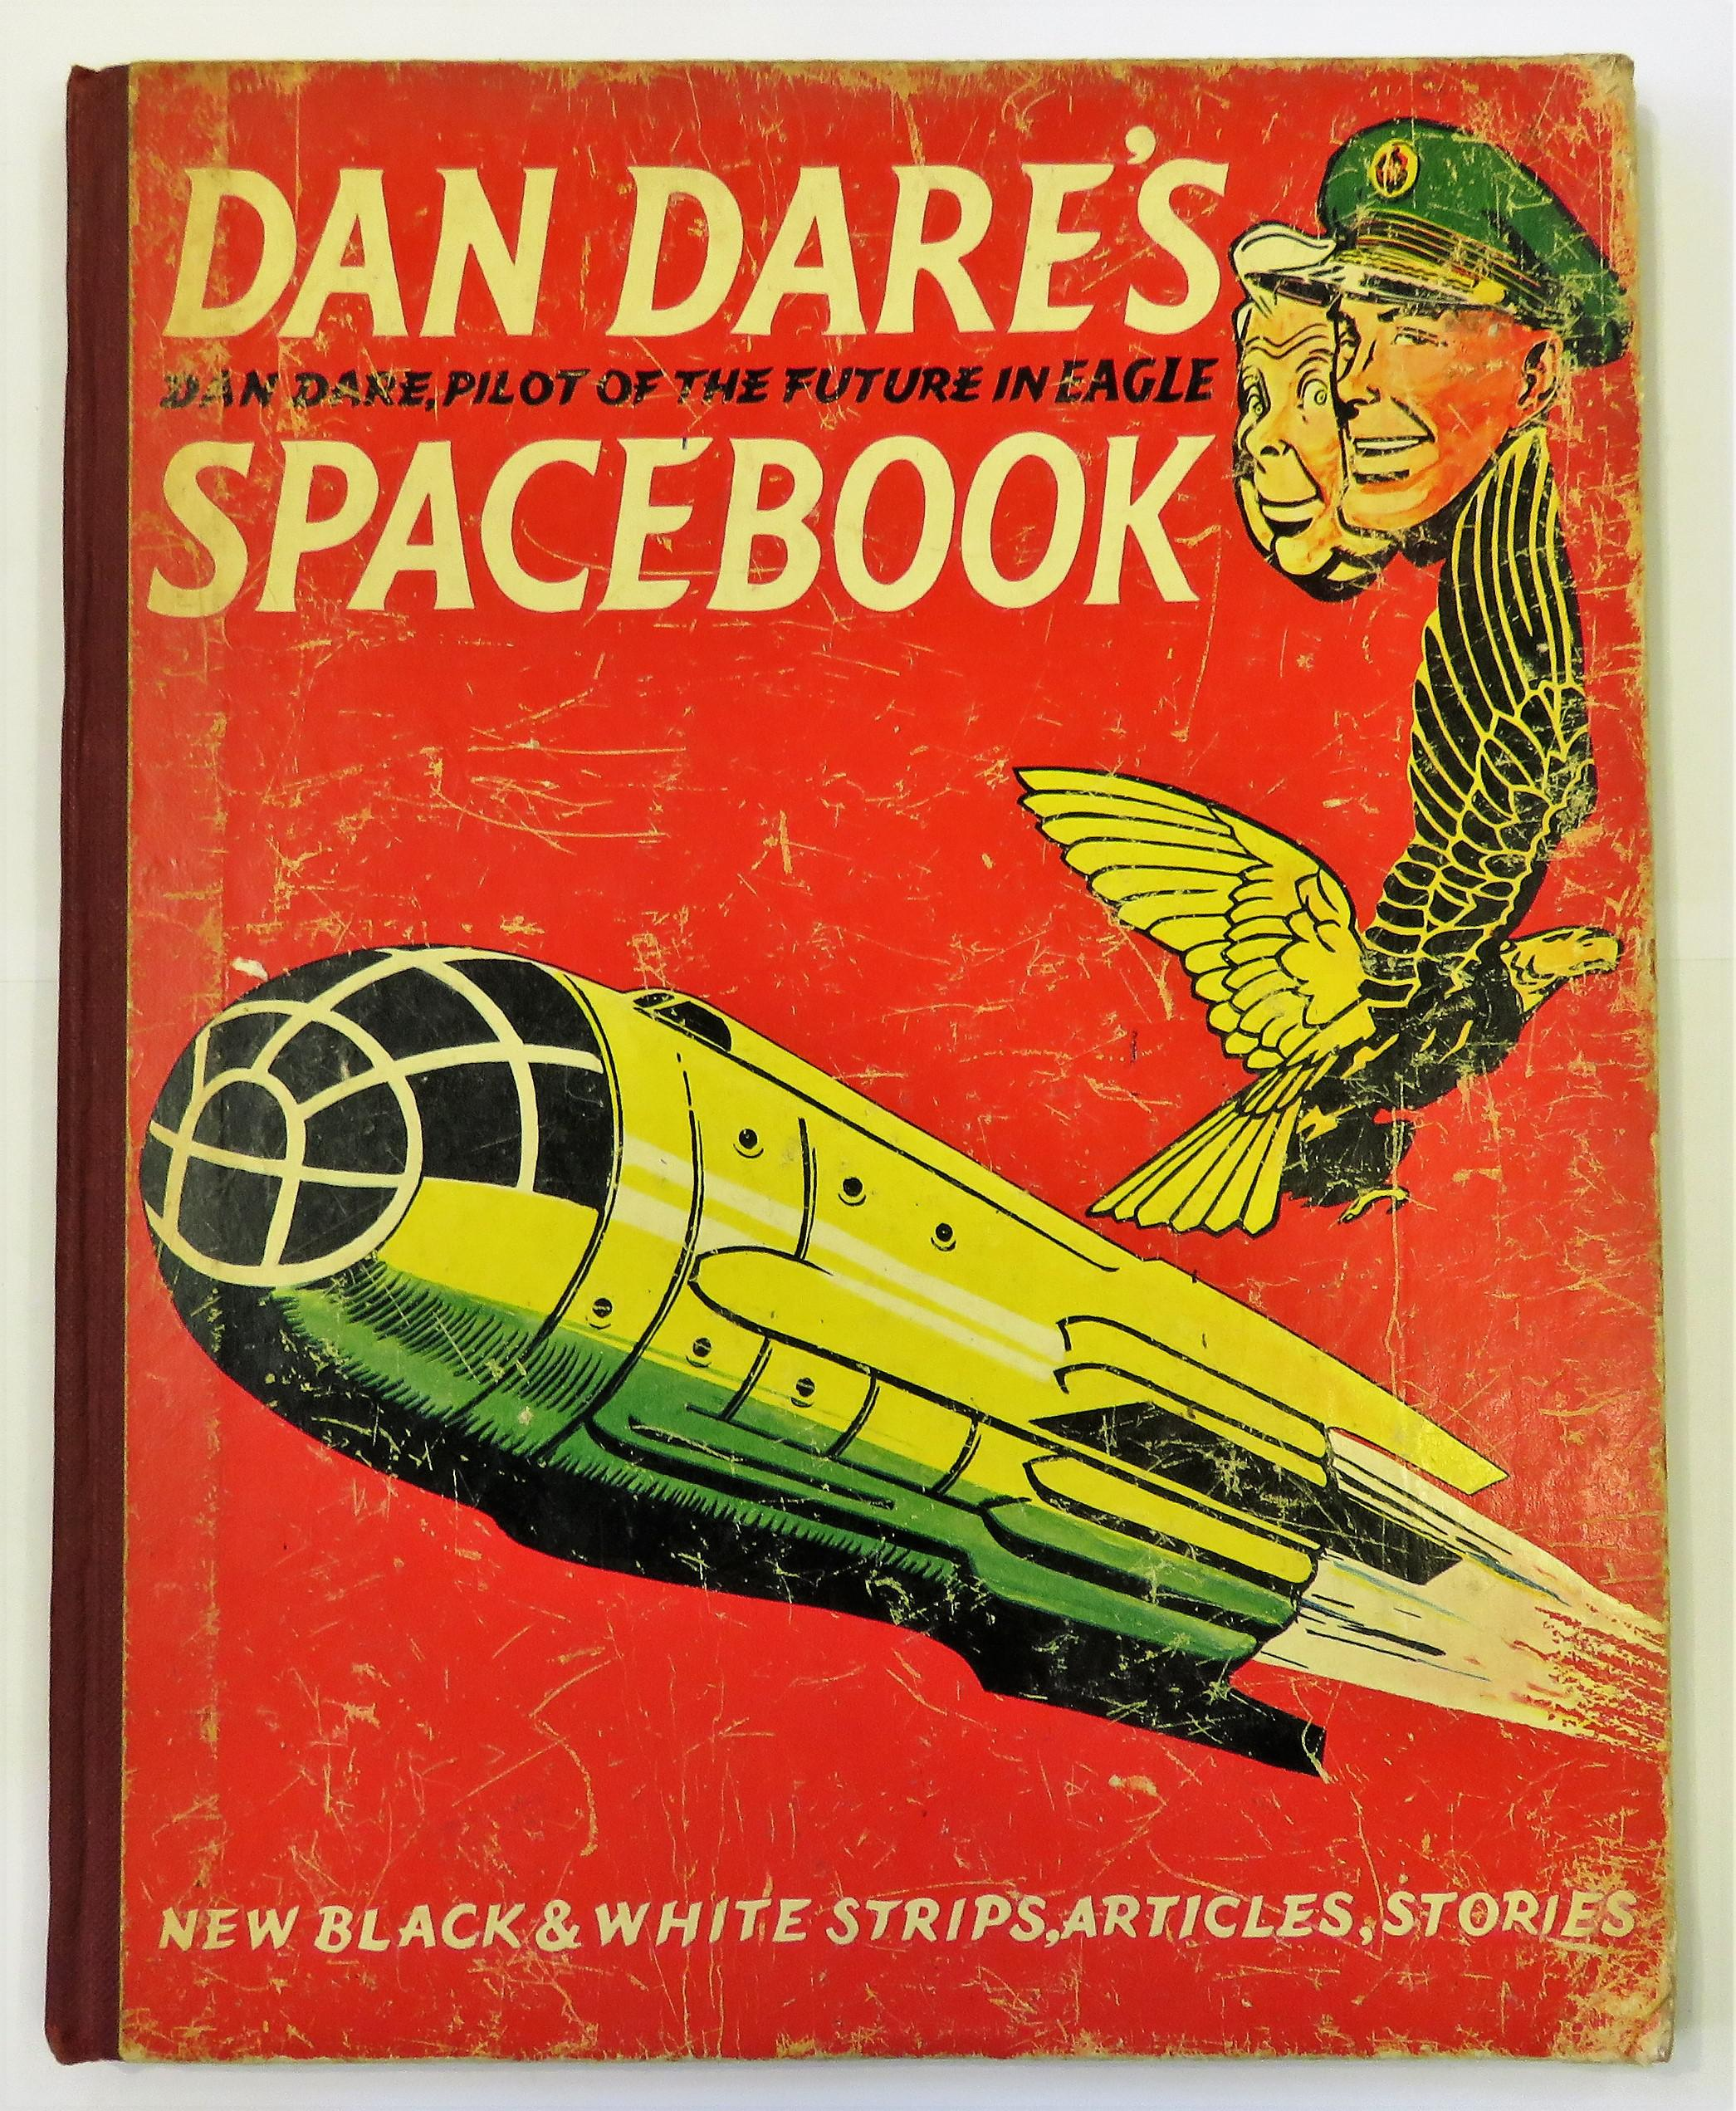 Dan Dare's Spacebook